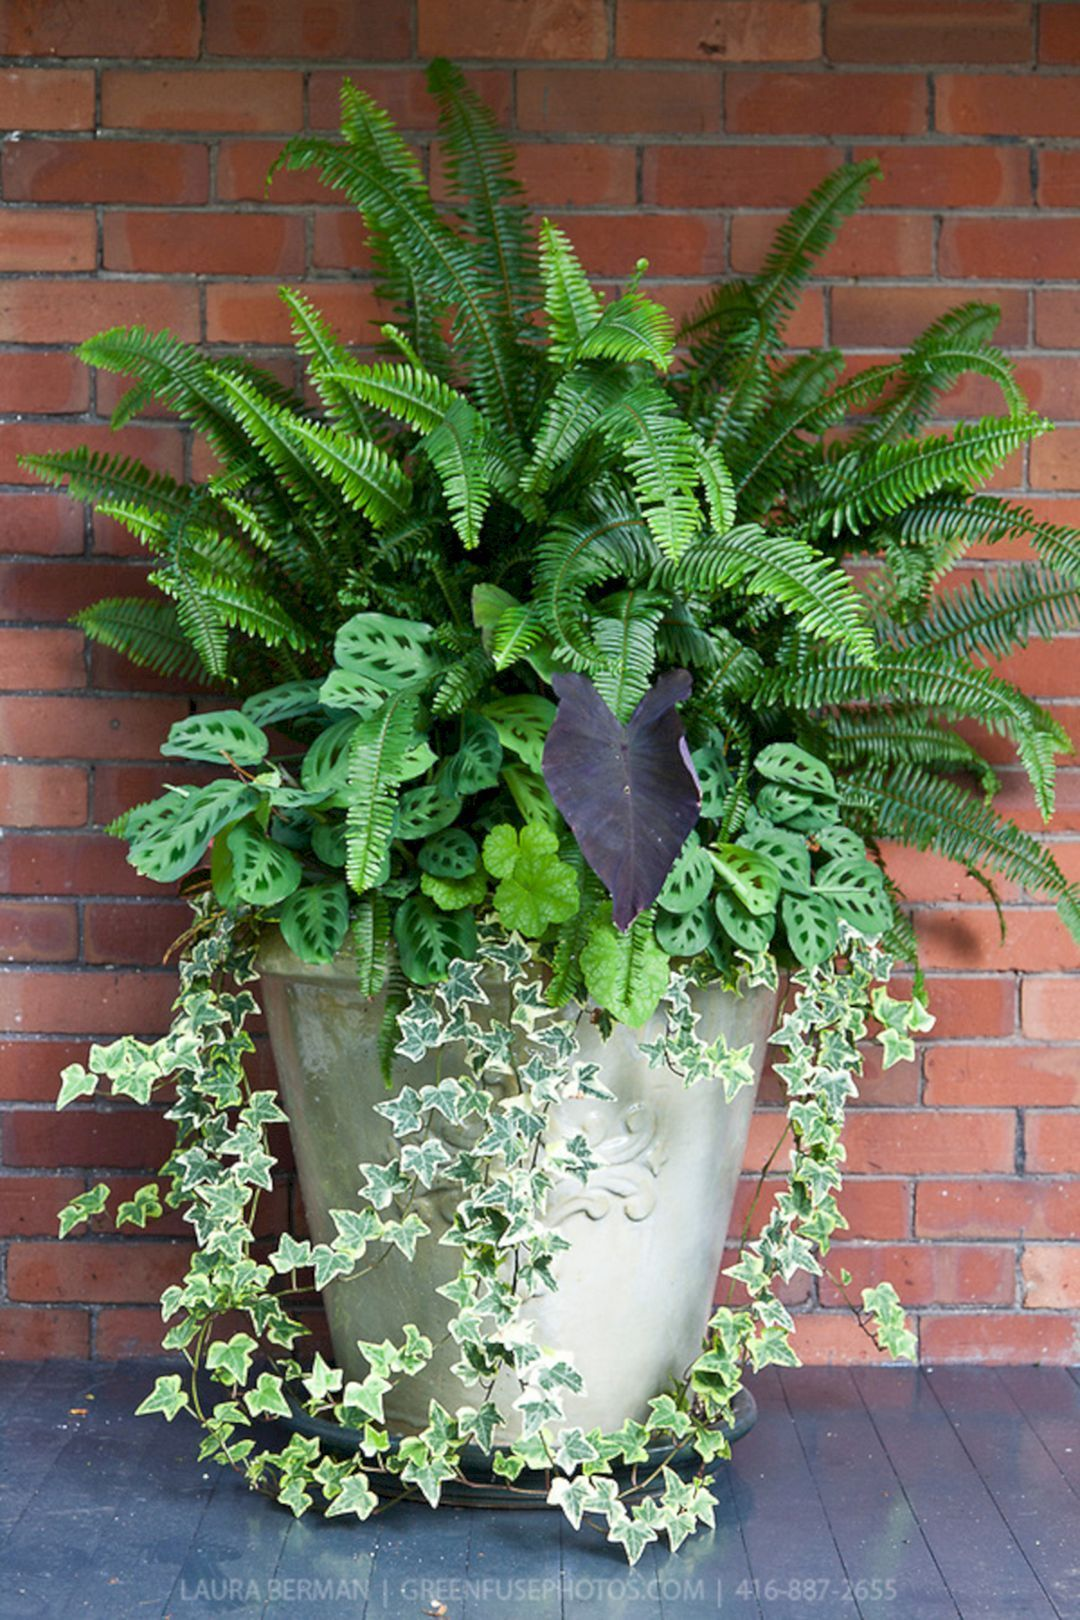 Front Porch Flower Planter Ideas 45 (Front Porch Flower Planter Ideas 45) design ideas and photos is part of Porch flowers, Front porch flowers, Container gardening, Container flowers, Container plants, Container gardening flowers - Front Porch Flower Planter Ideas 45